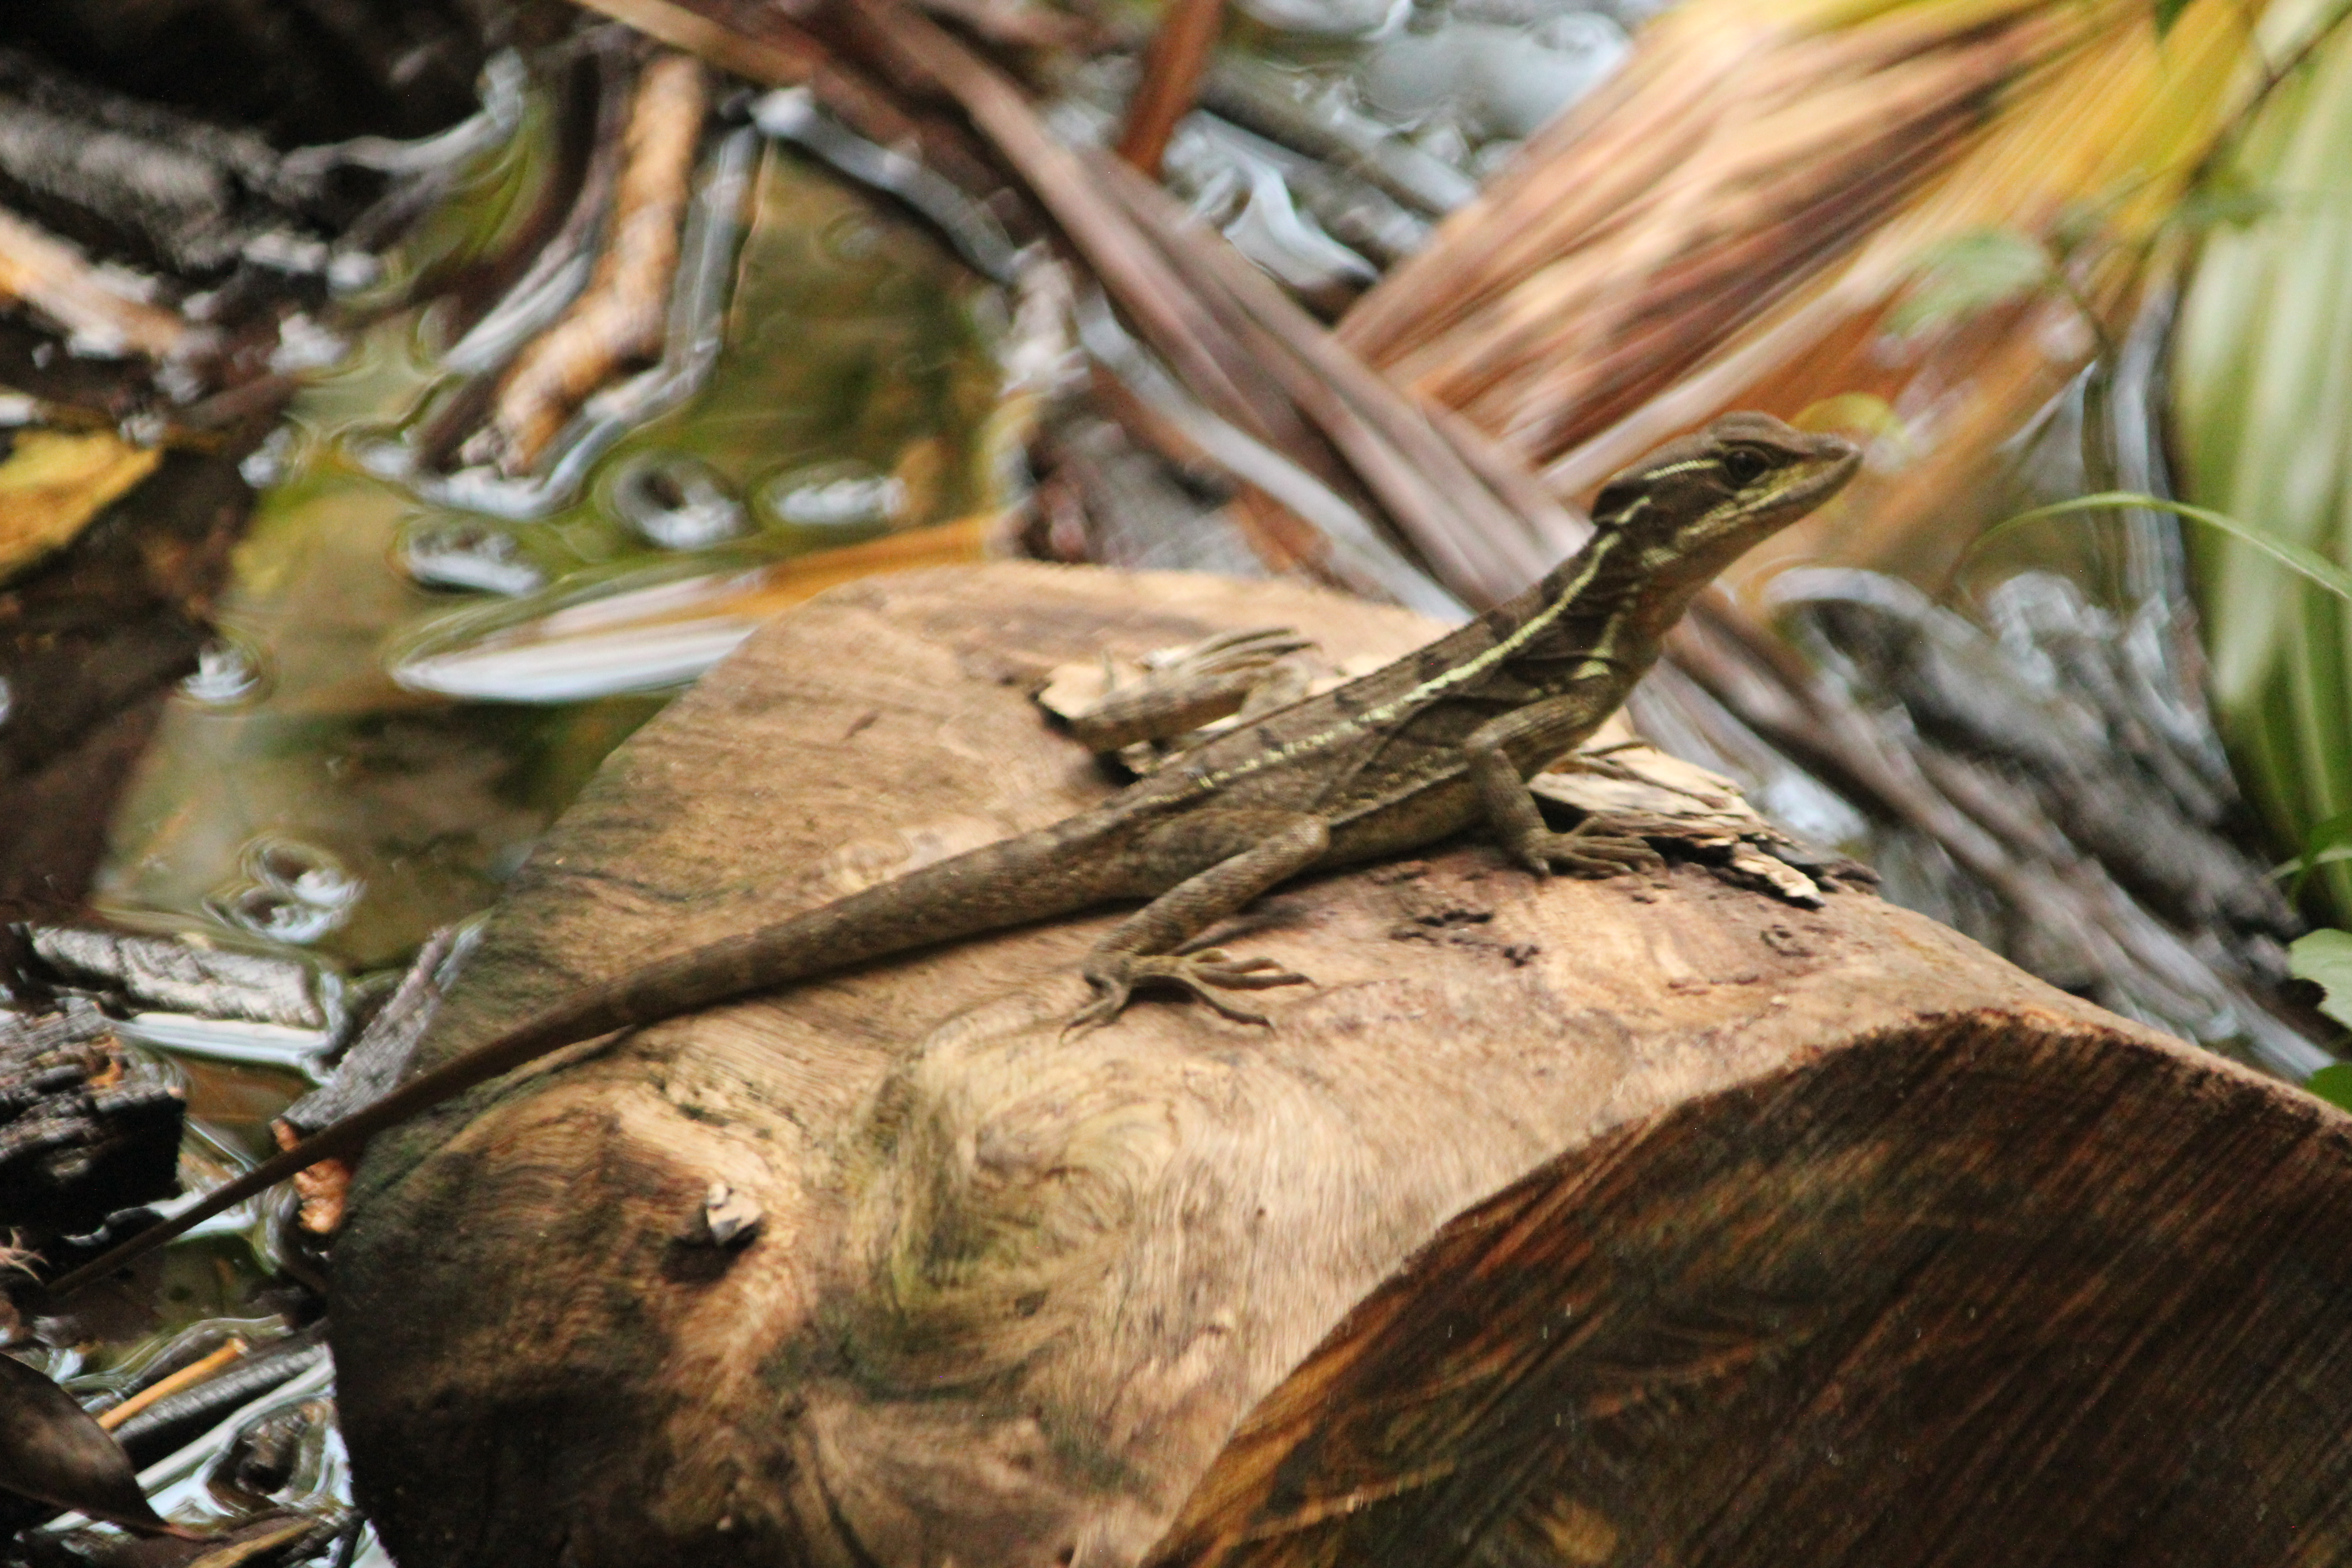 Lizard Sitting on a Rock; Manuel Antonio, Costa Rica; 2013